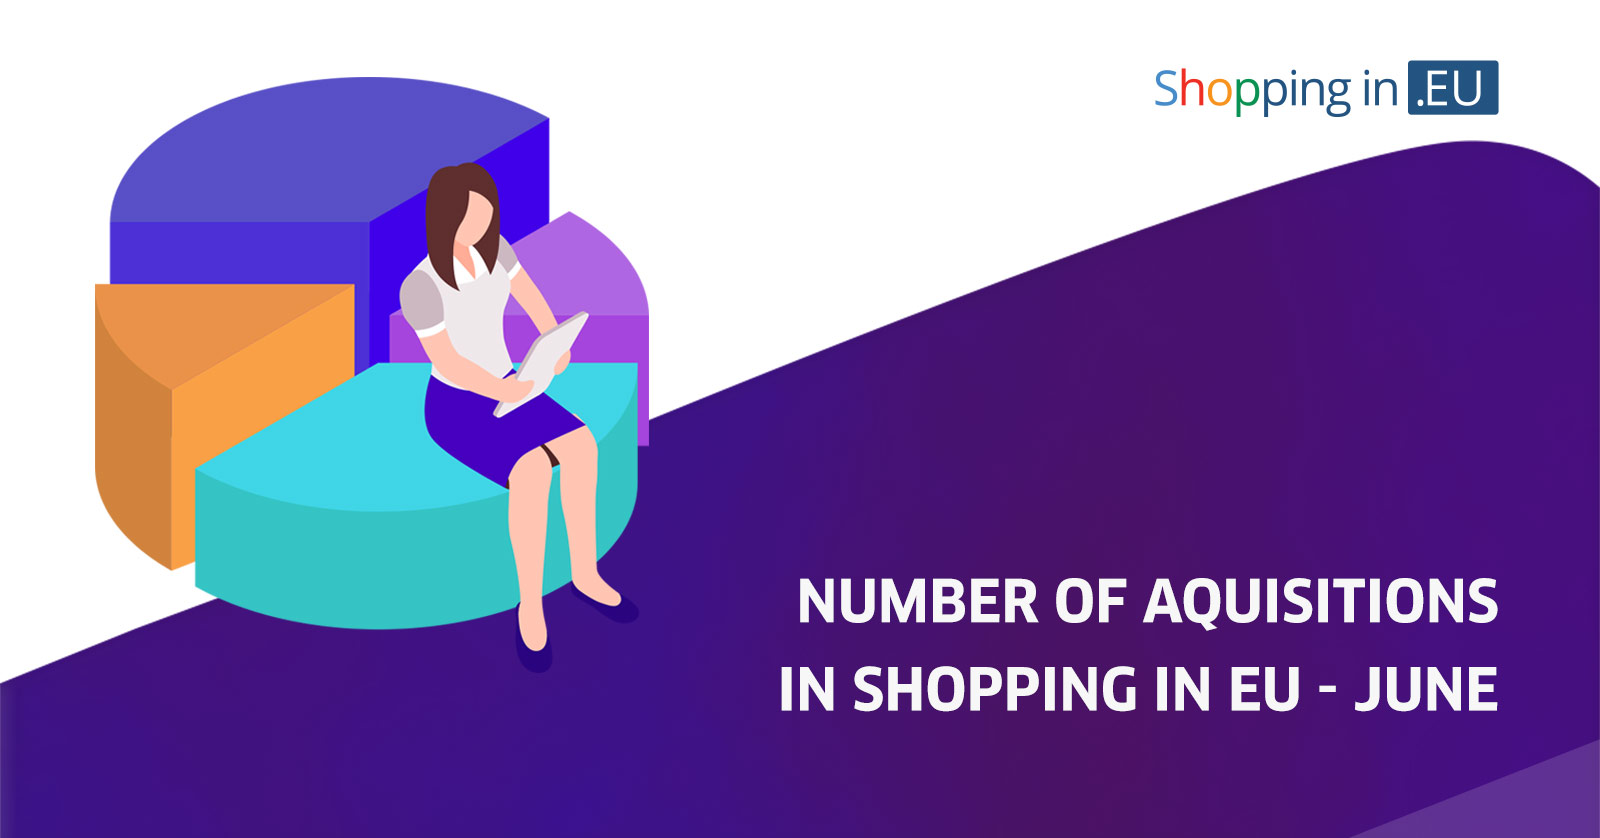 number of acquisitions in shopping in eu - june